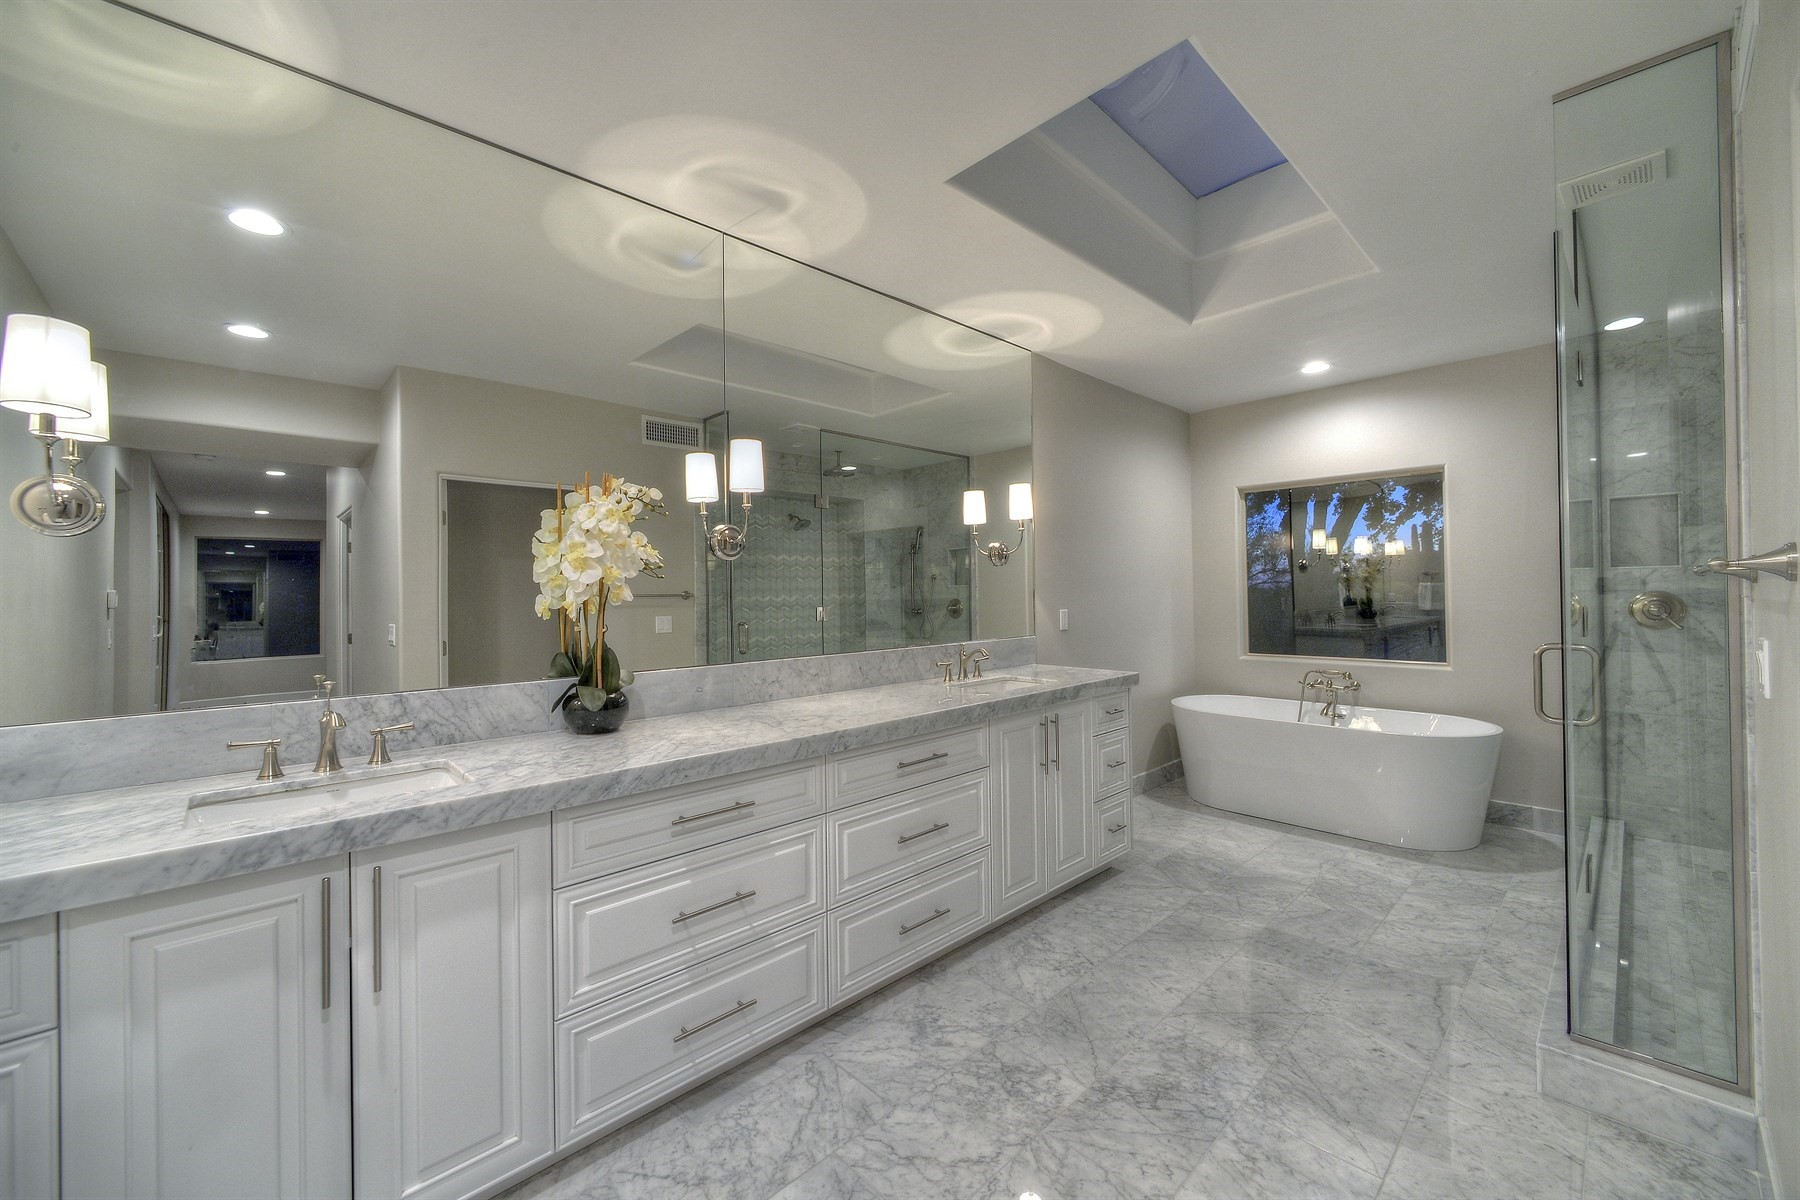 single family homes for Active at Beautiful Remodeled Contemporary Custom Home in The Boulders 1310 E Coyote Pass Carefree, Arizona 85377 United States